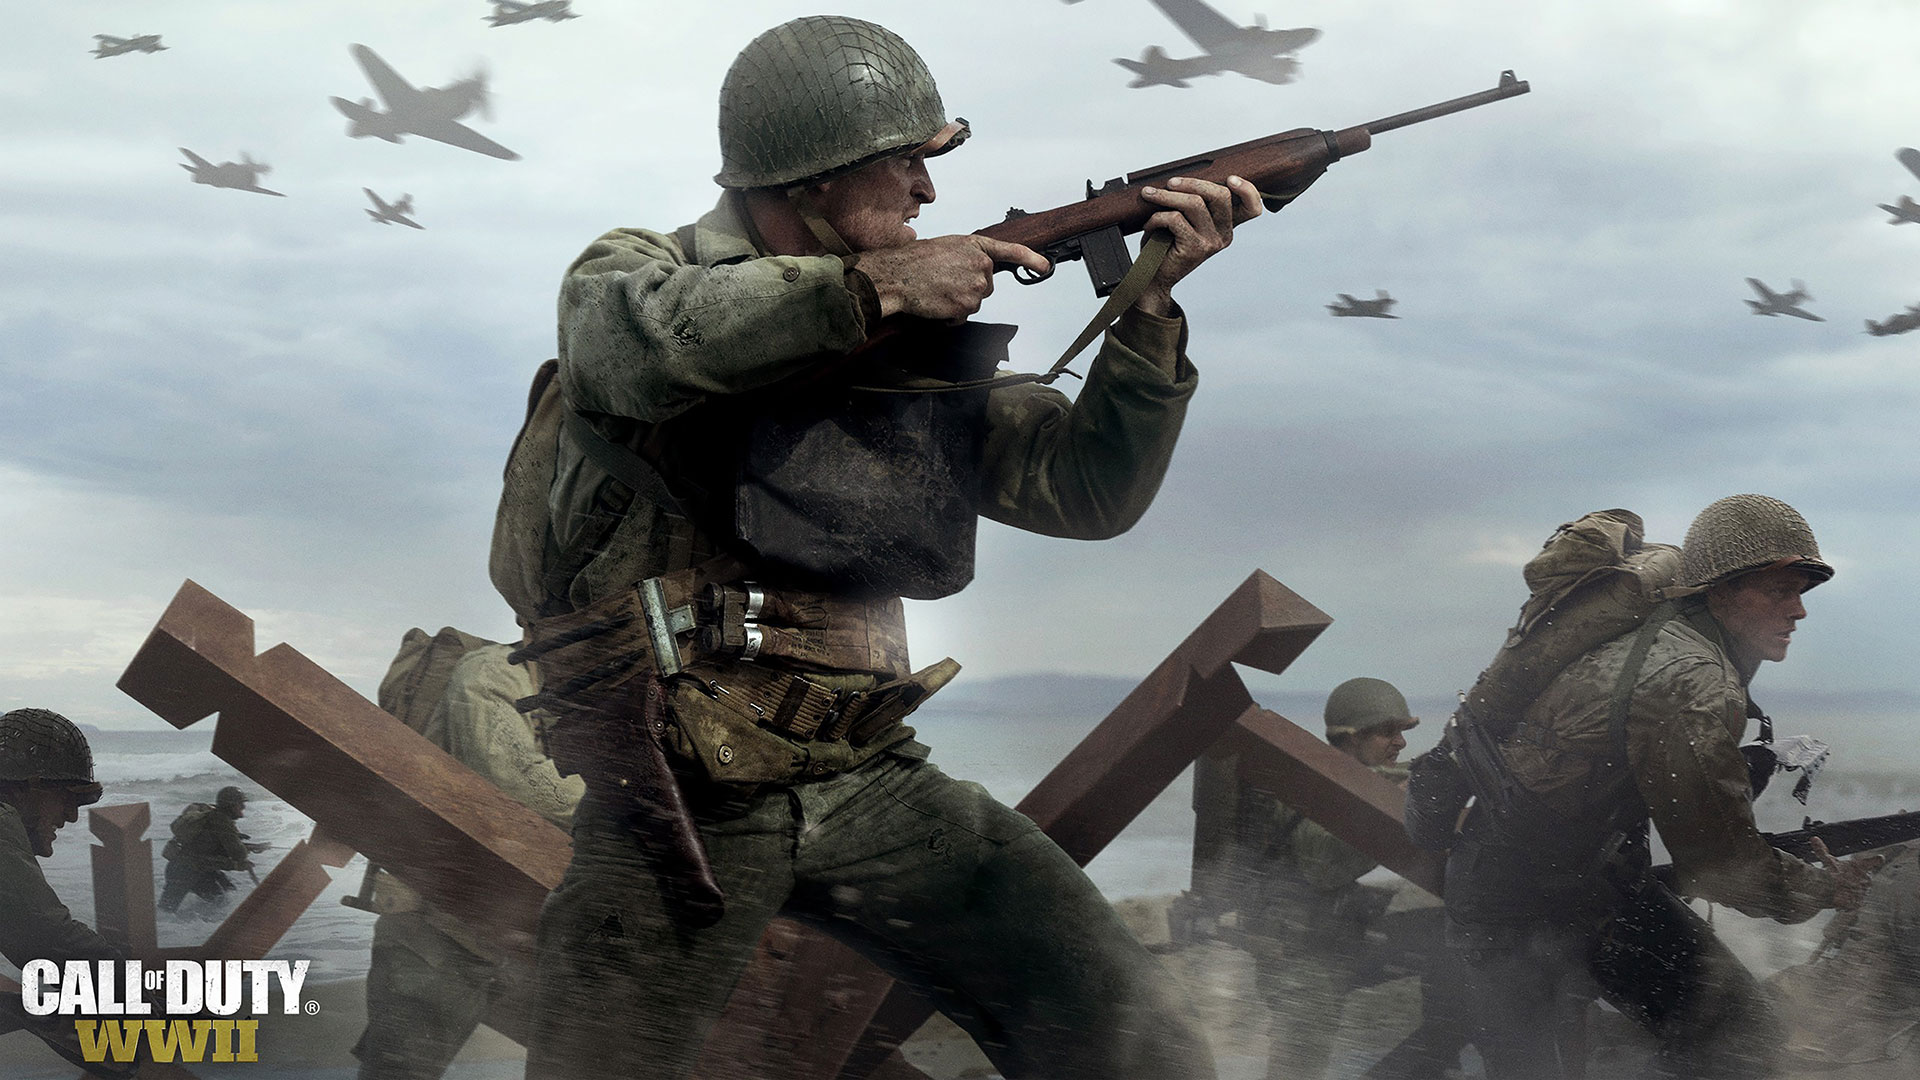 Call of Duty: WWII soars past $500 million opening weekend